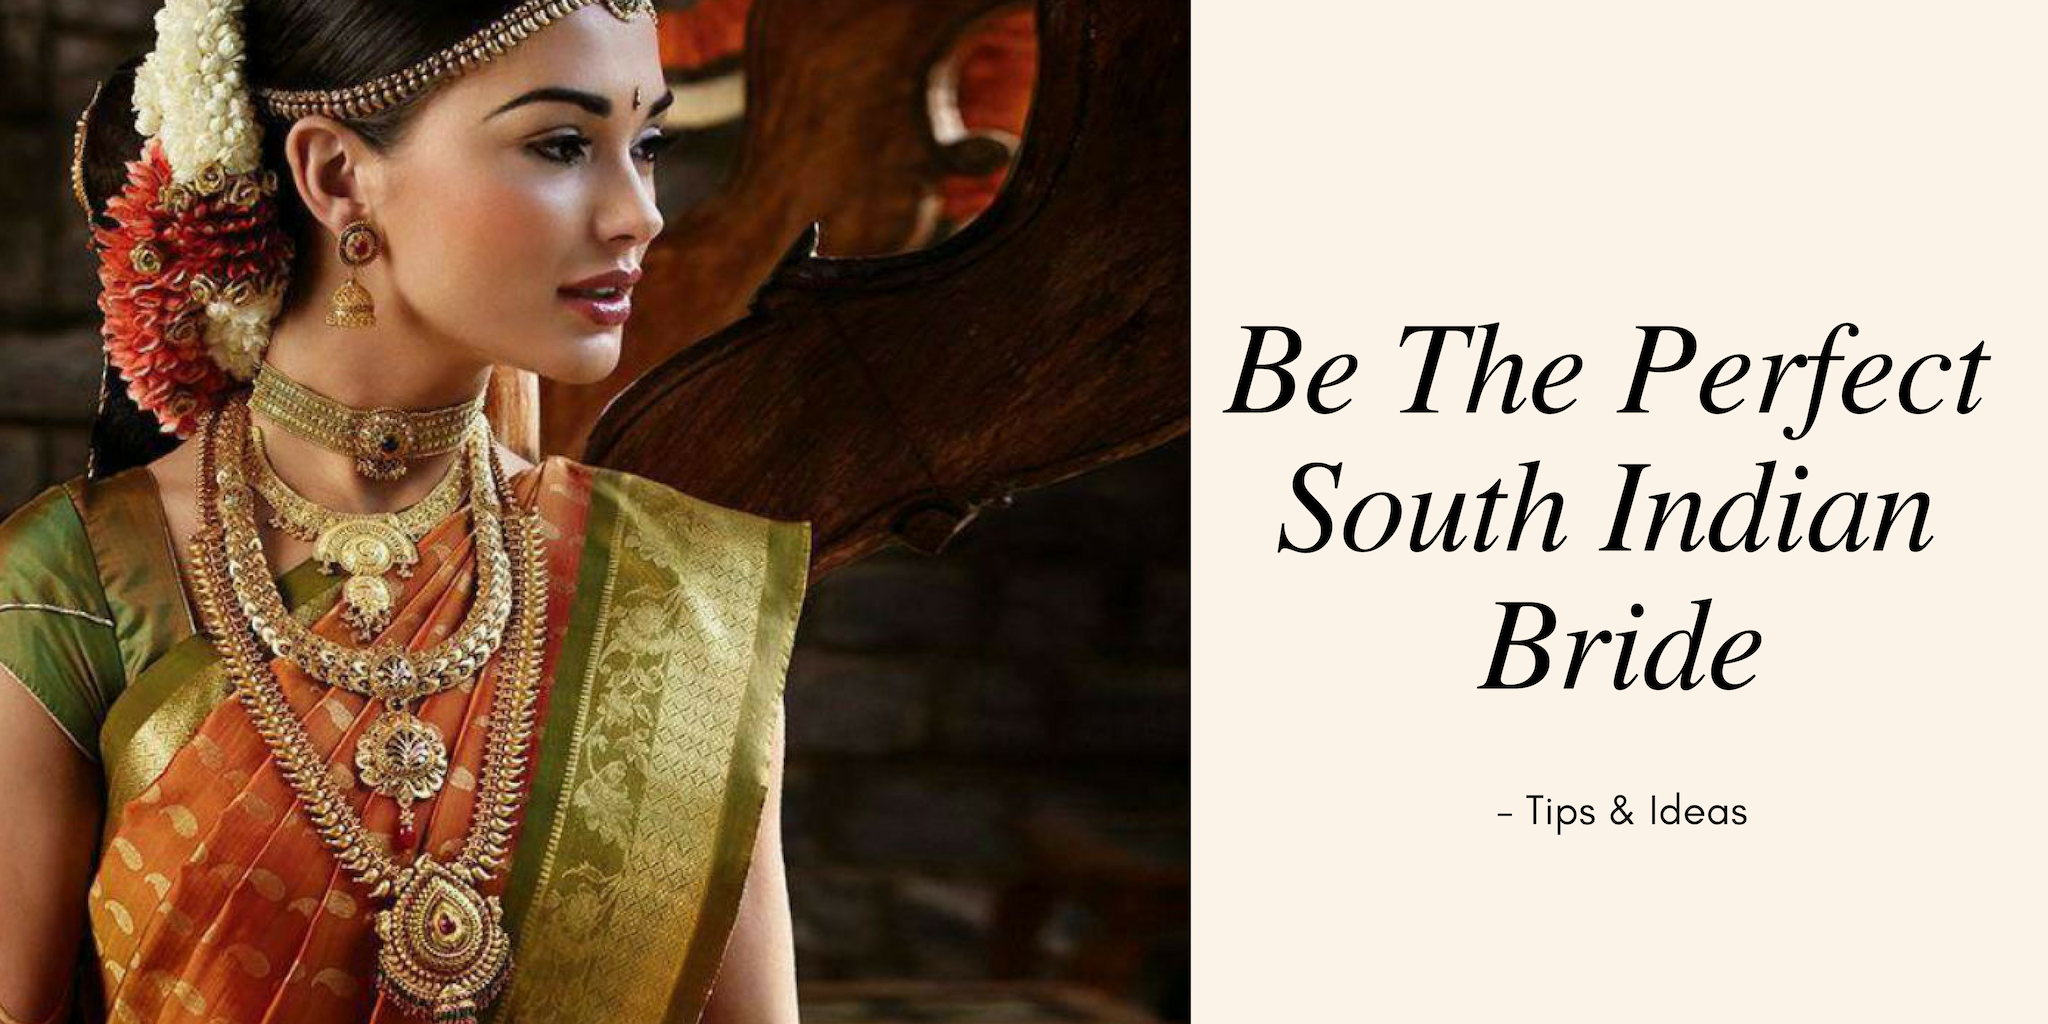 a29010c0c6 Take A Look On How To Be The Perfect South Indian Bride